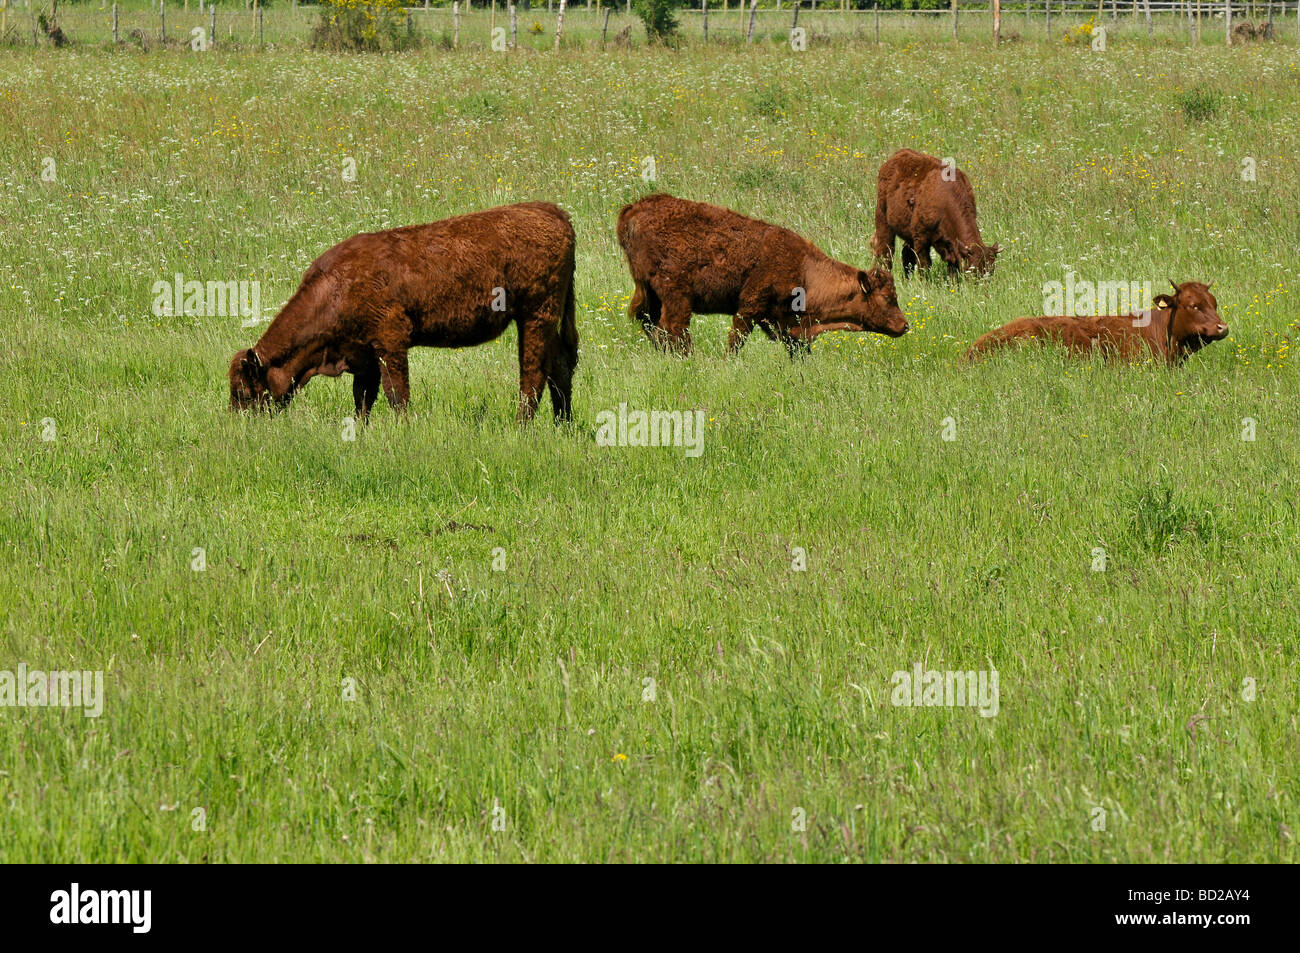 Four calves in a field, France - Stock Image